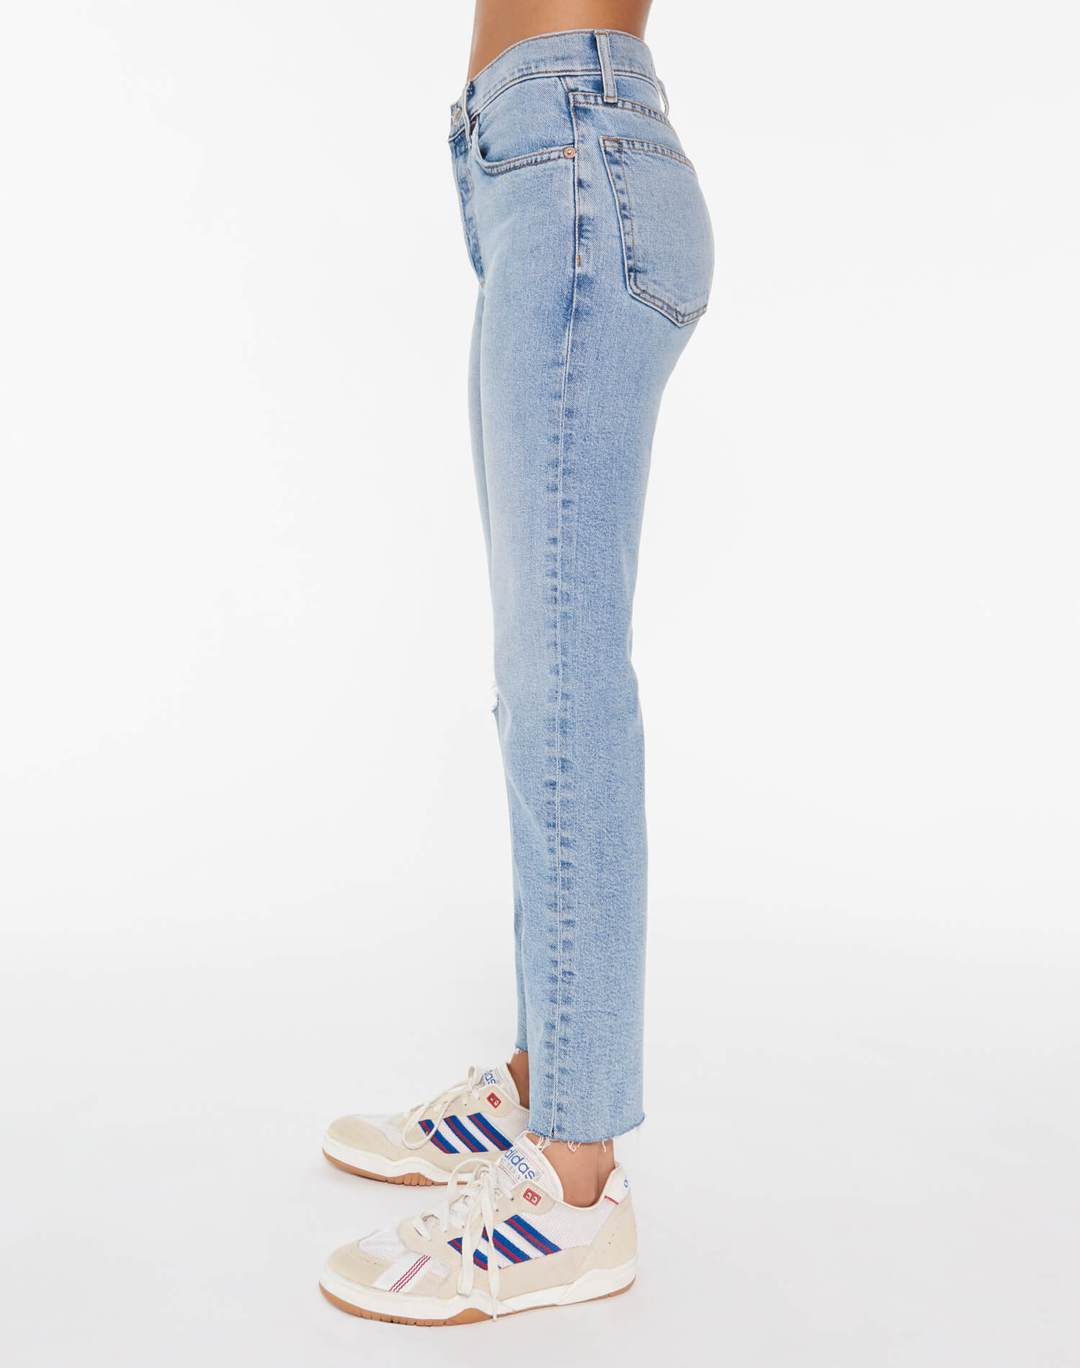 REDONE LLC Womens Jeans RE/DONE | High Rise Stove Pipe Comfort Stretch - Cloudy